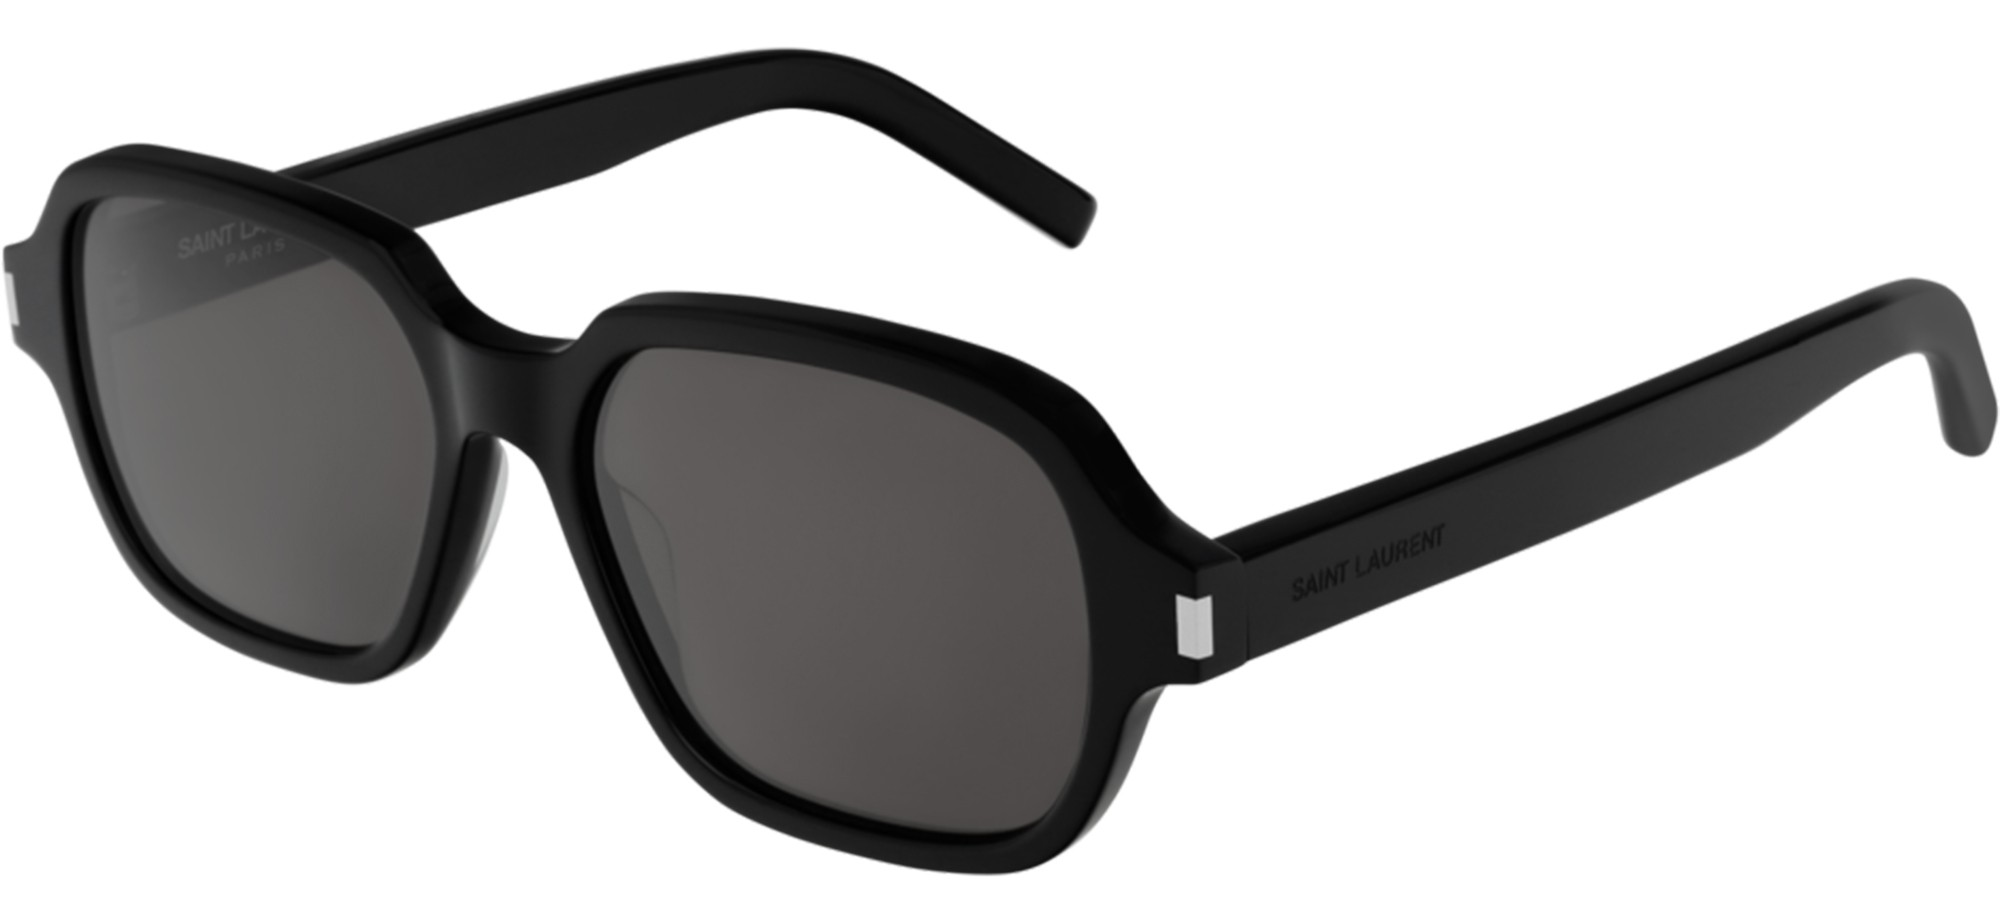 Saint Laurent sunglasses SL 292